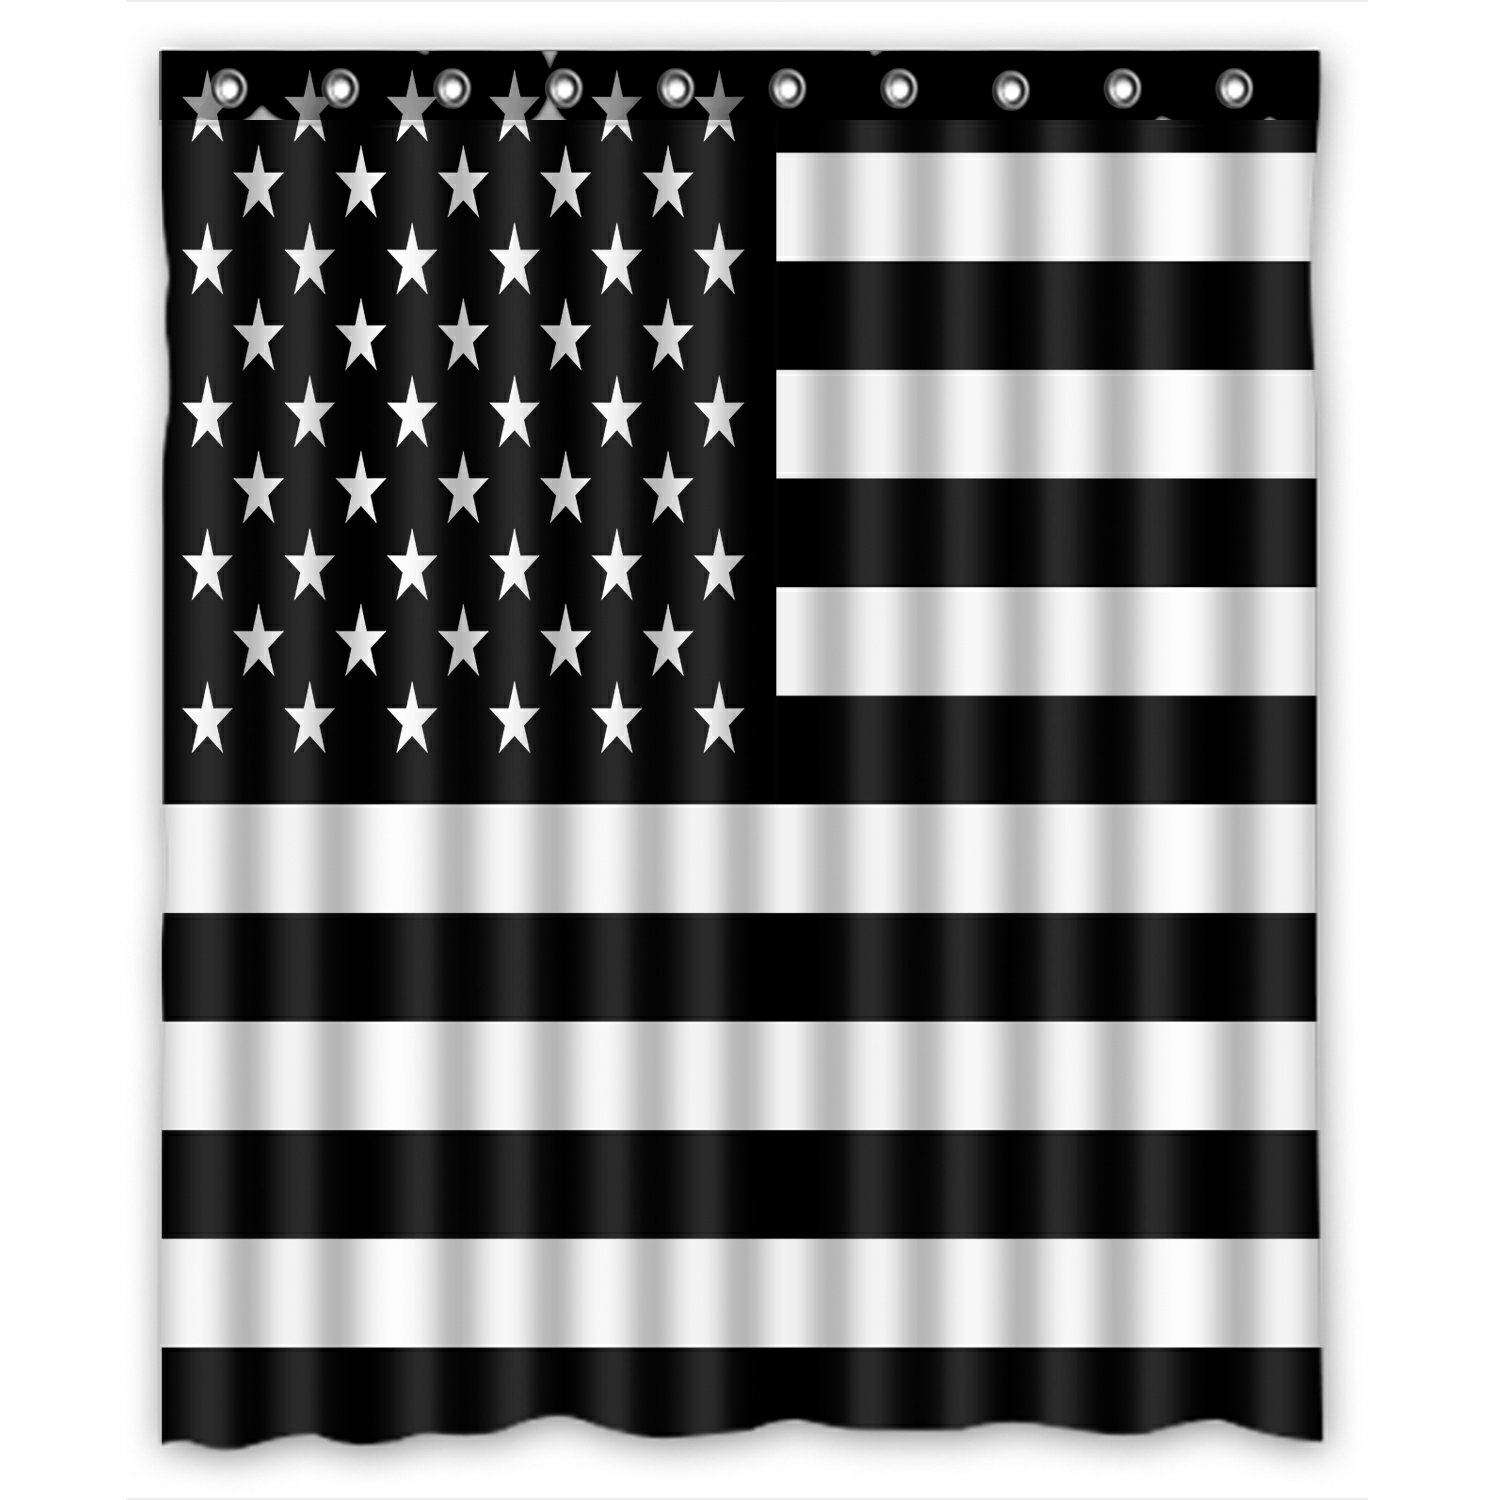 phfzk flag shower curtain american flag black and white polyester fabric bathroom shower curtain 60x72 inches